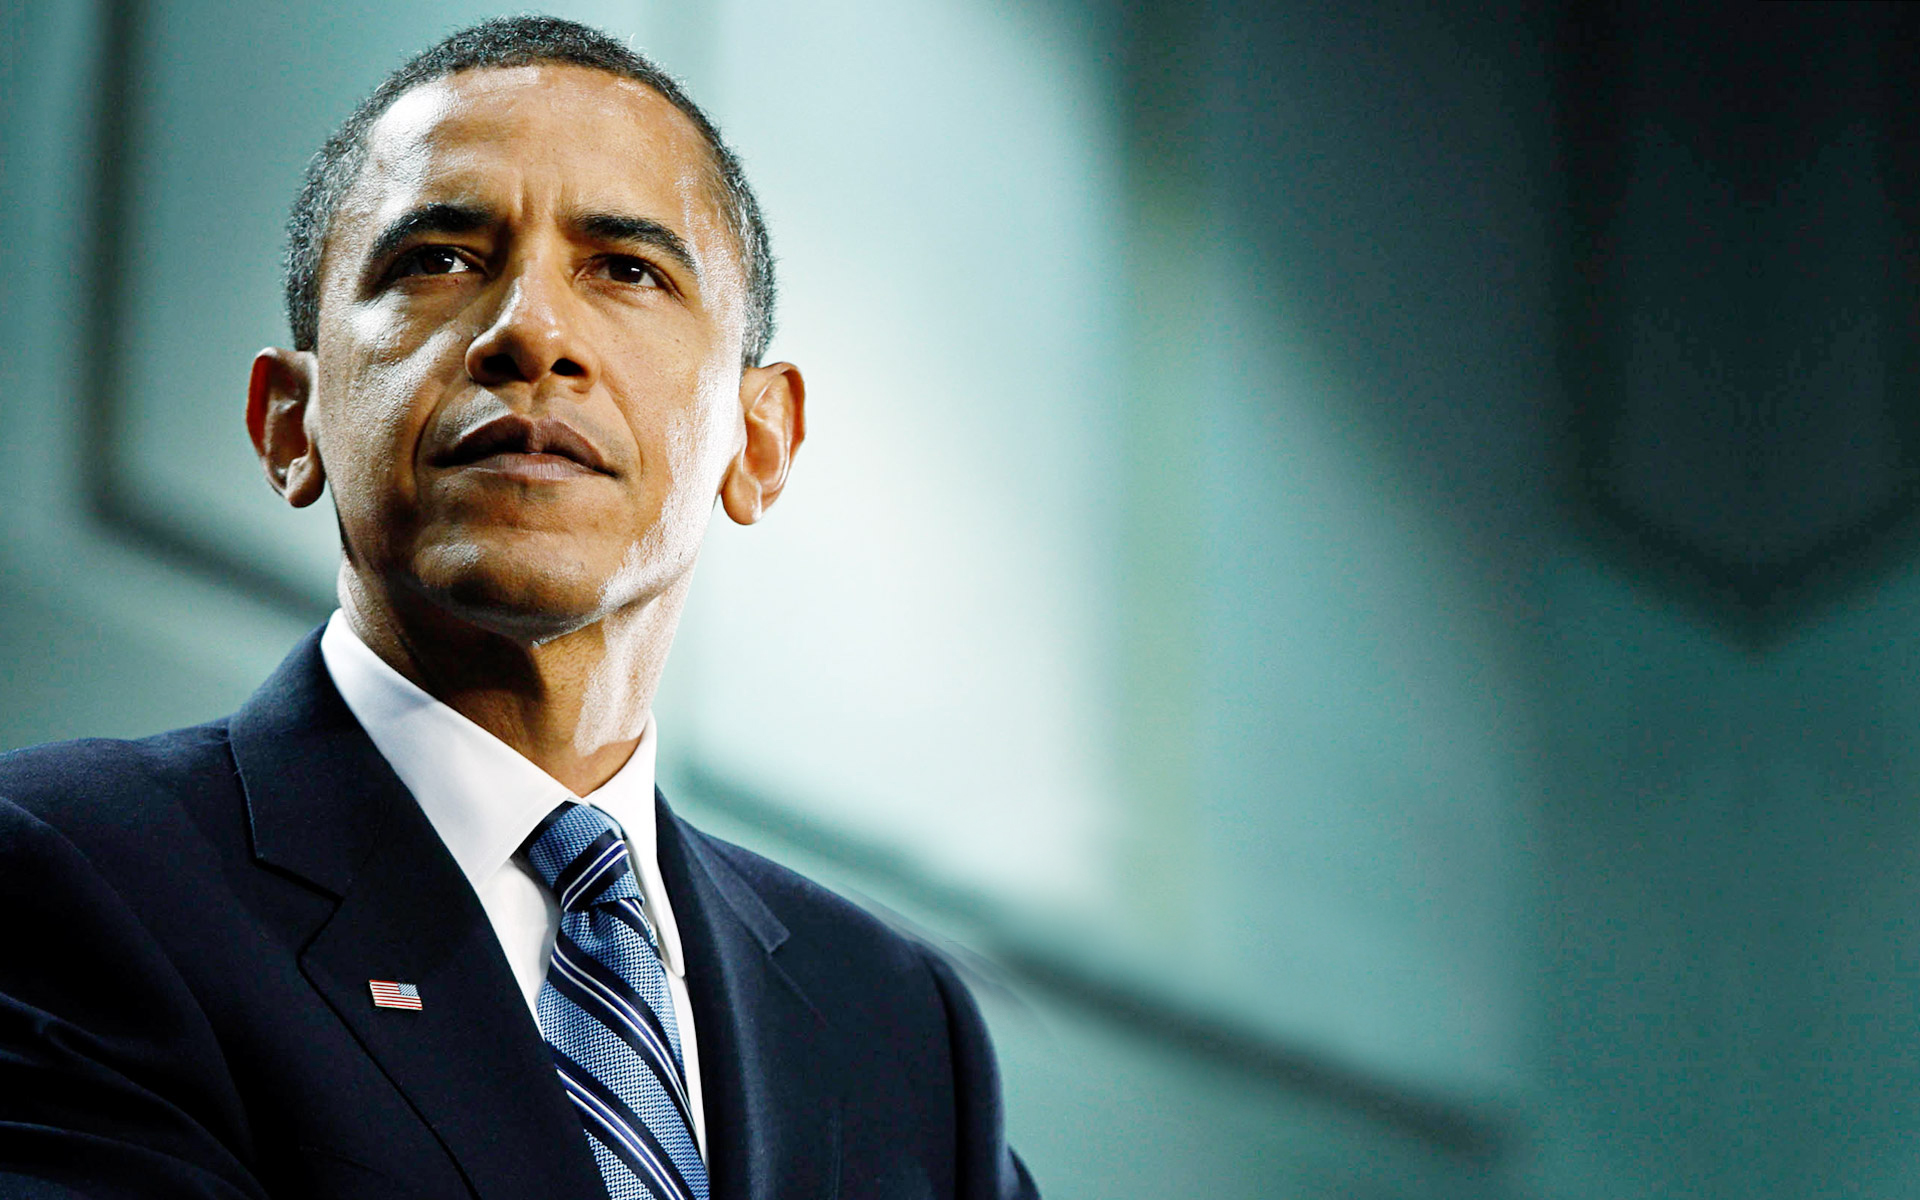 Free Download President Barack Obama Hd Images Photos Amp Wallpapers 1920x1200 For Your Desktop Mobile Tablet Explore 76 President Obama Wallpapers Obama Desktop Wallpaper Anti Obama Wallpaper Desktop